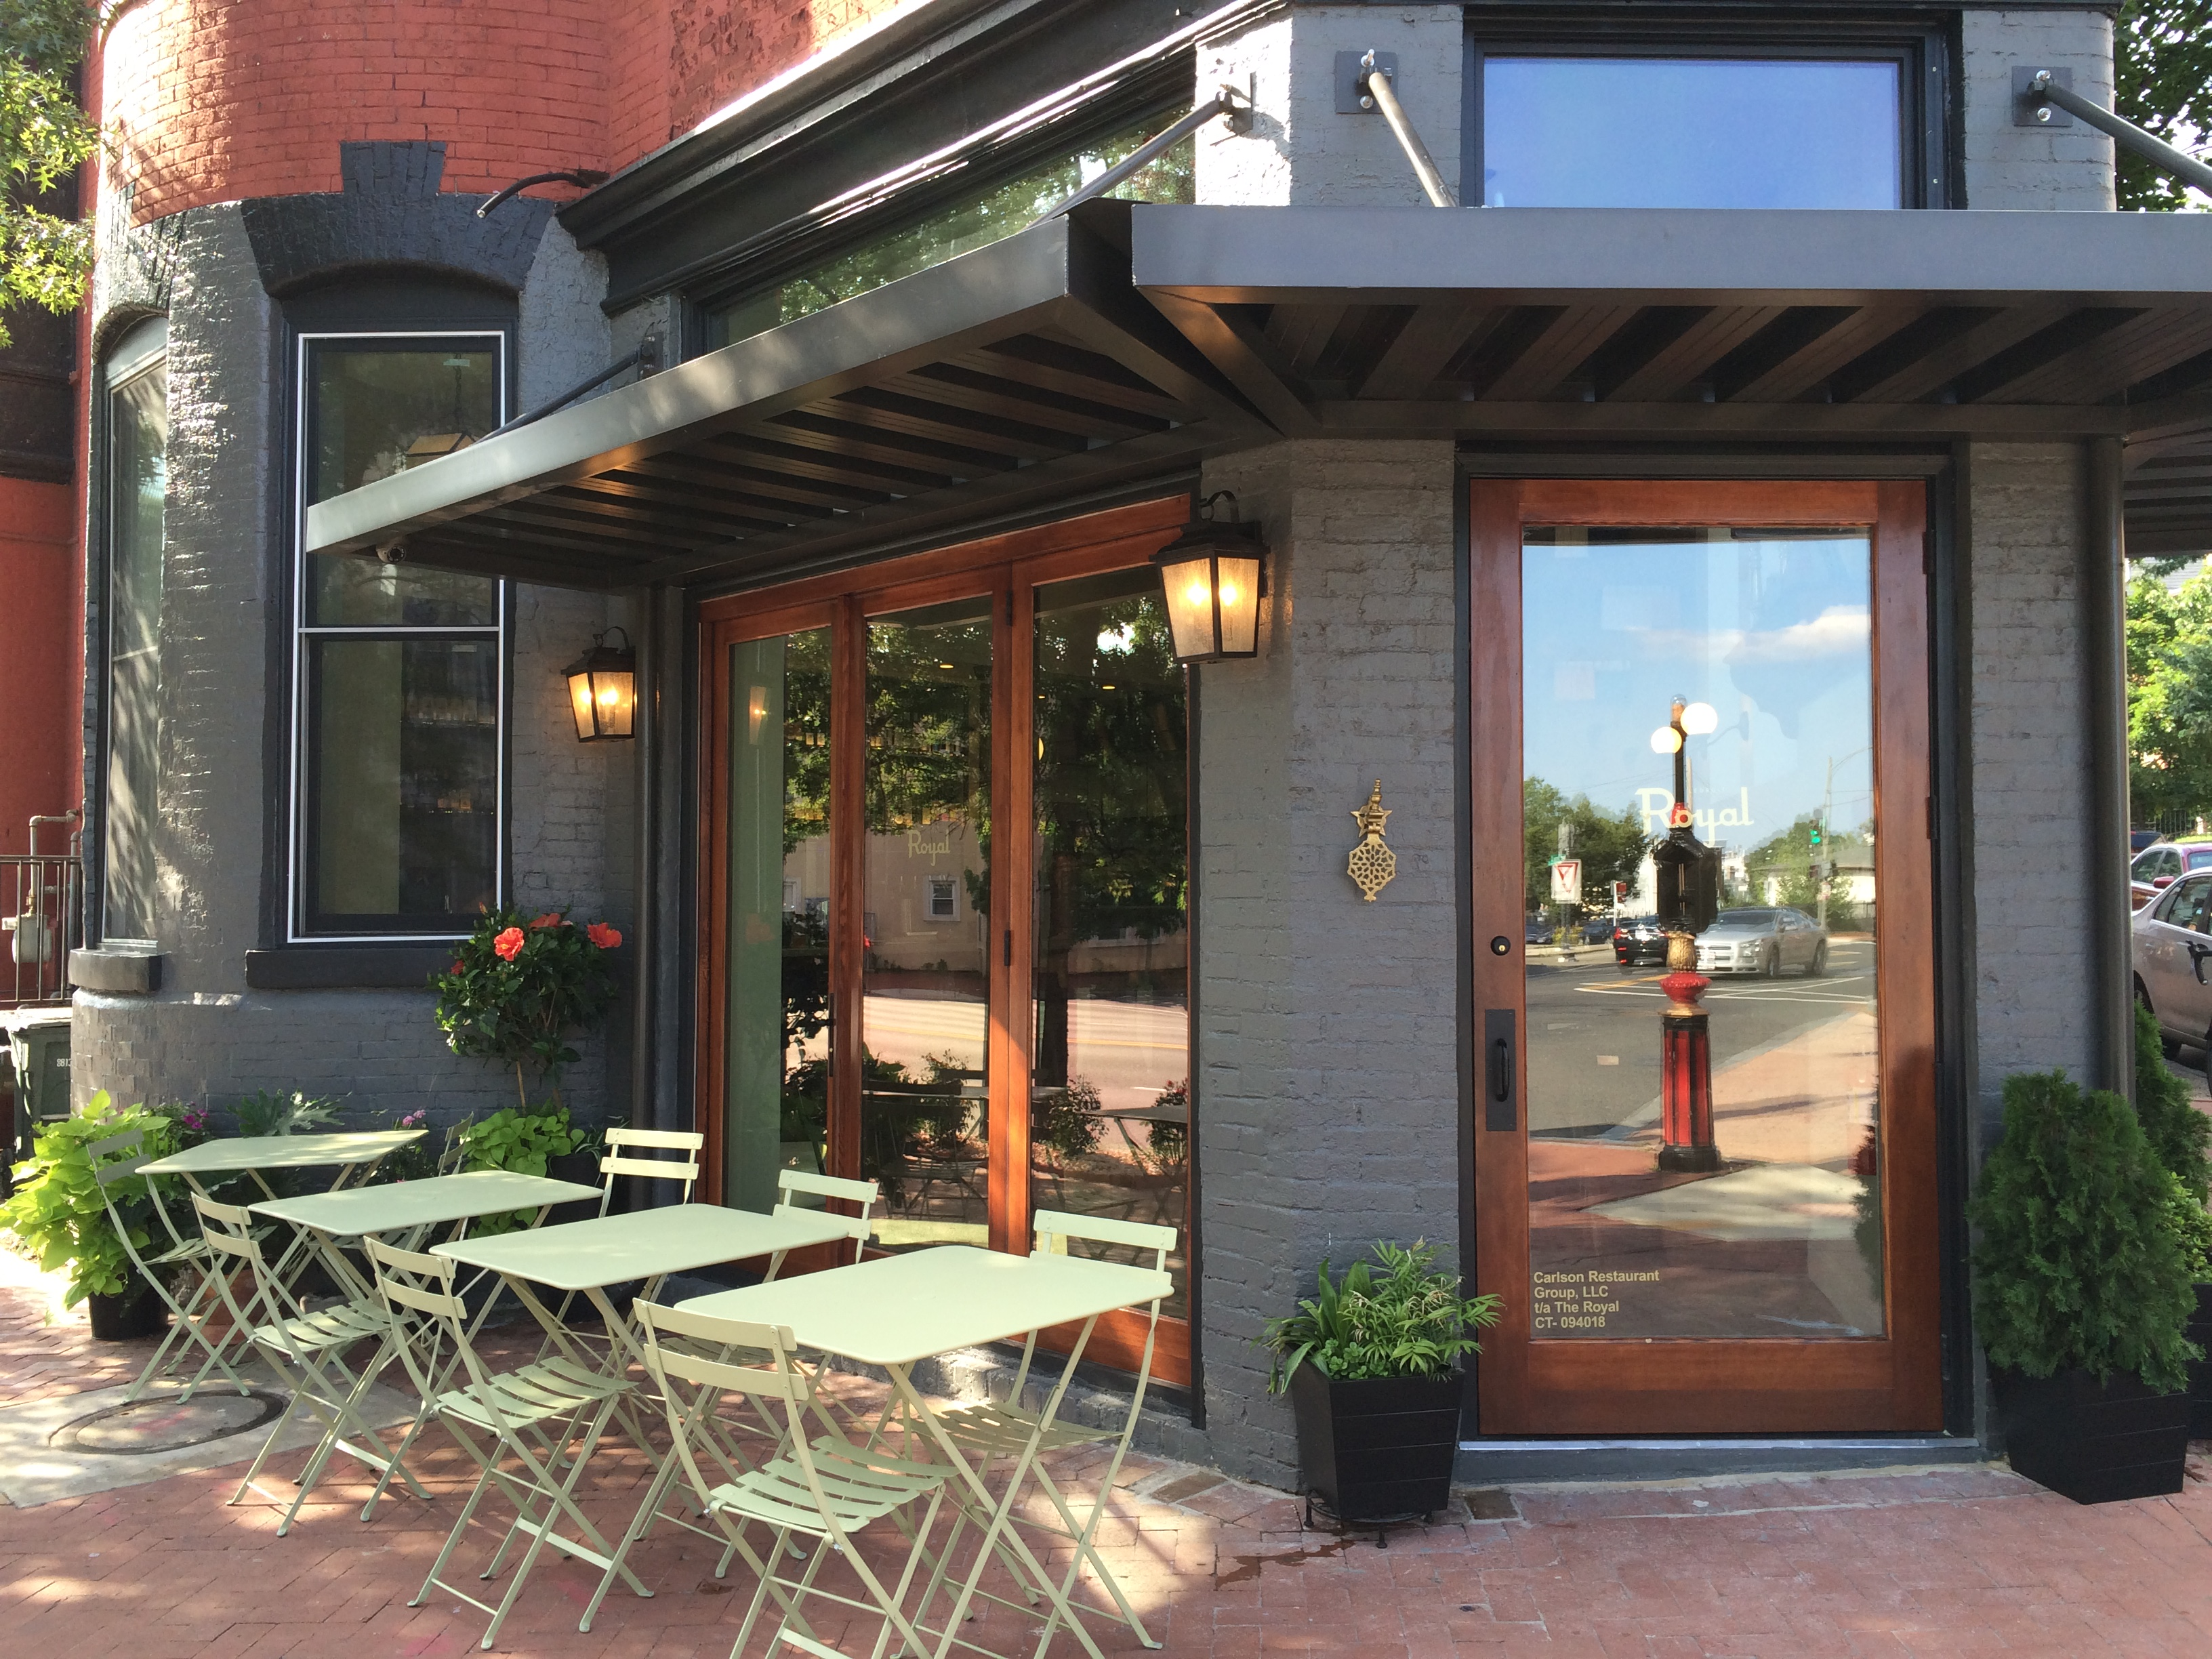 The Royal, from the owners of Vinoteca, opened in LeDroit Park this week. (Photo: The Royal)